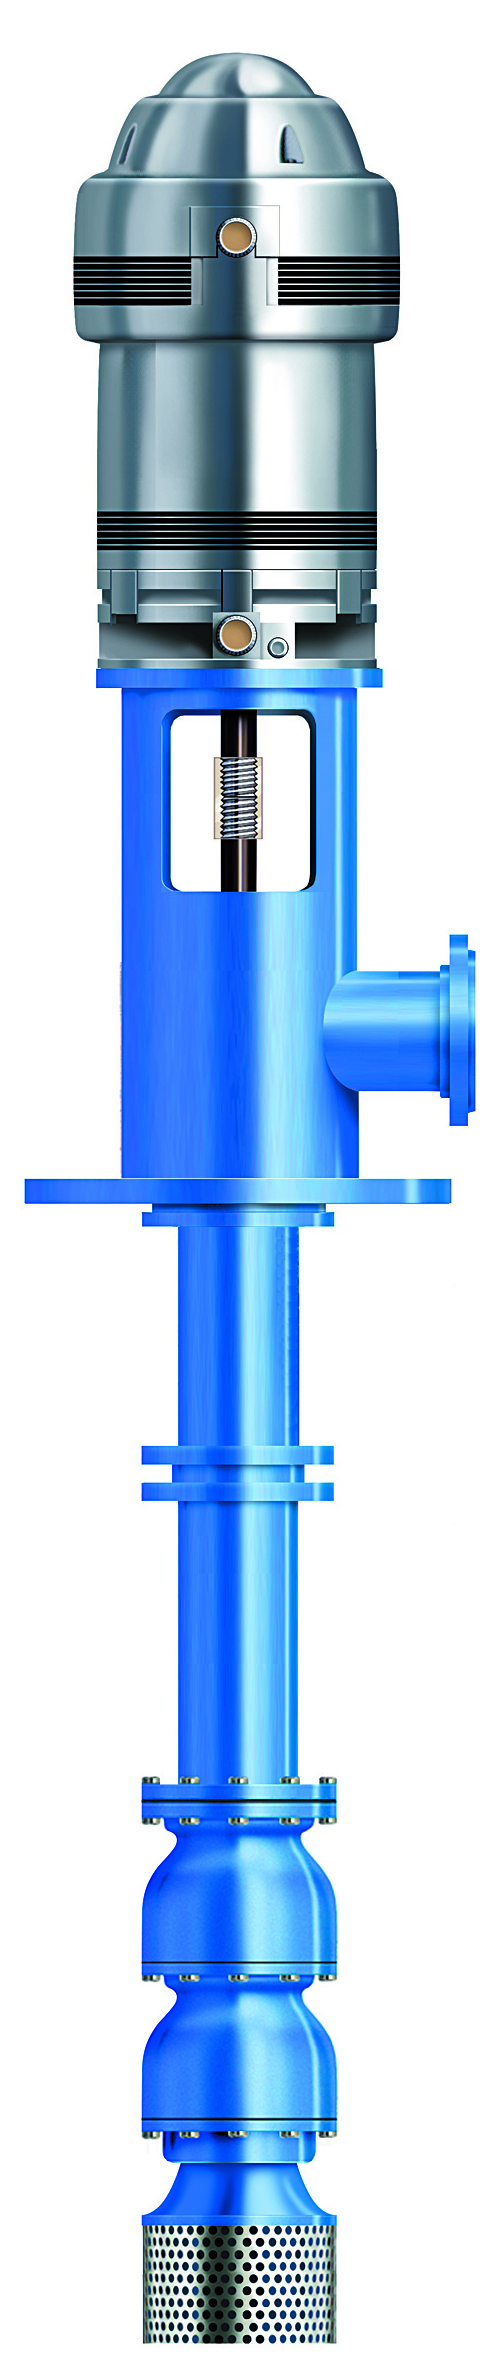 VIT – Short Set Lineshaft Turbine Pumps